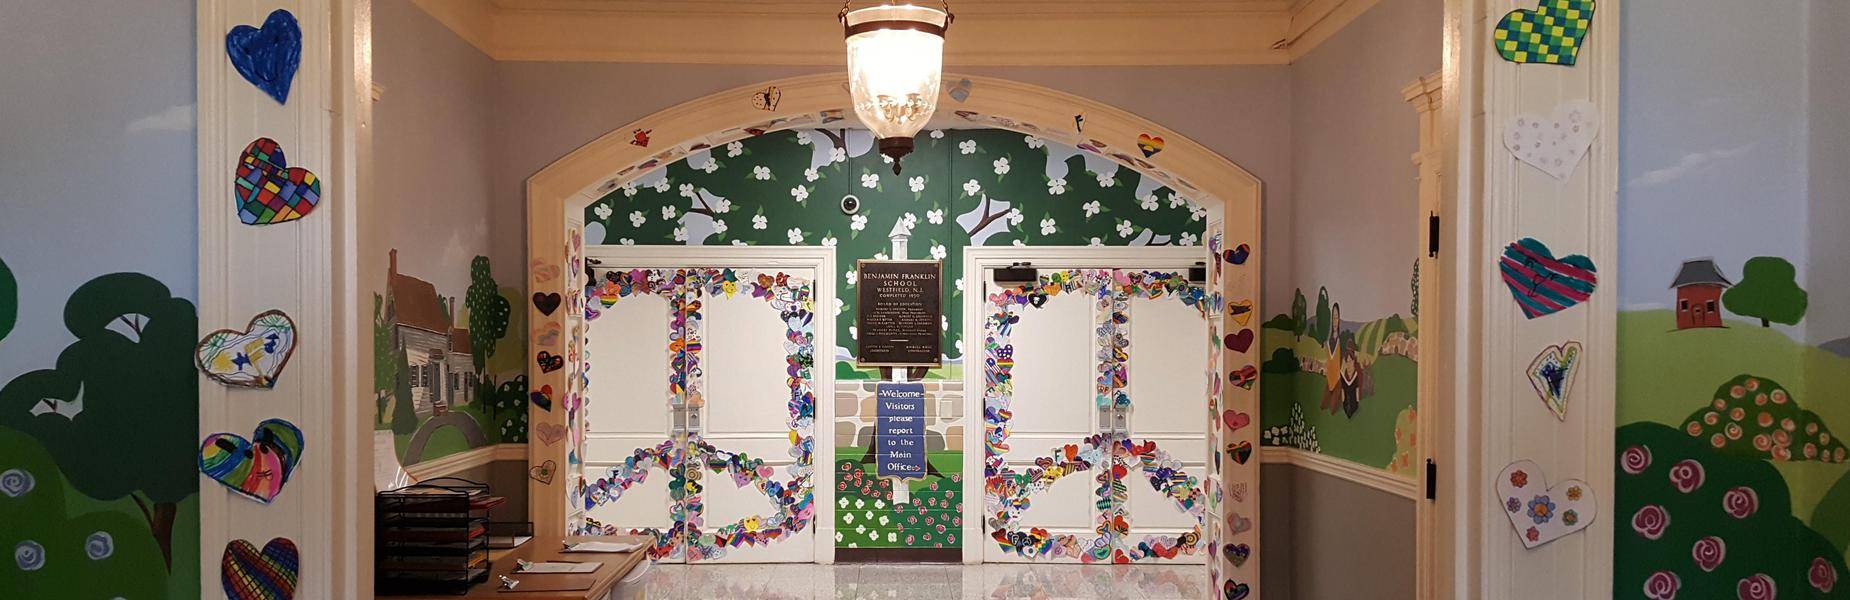 Each Franklin 5th grader created/decorated a paper heart with all hearts combined to create two large peace signs on the auditorium doors and elsewhere.